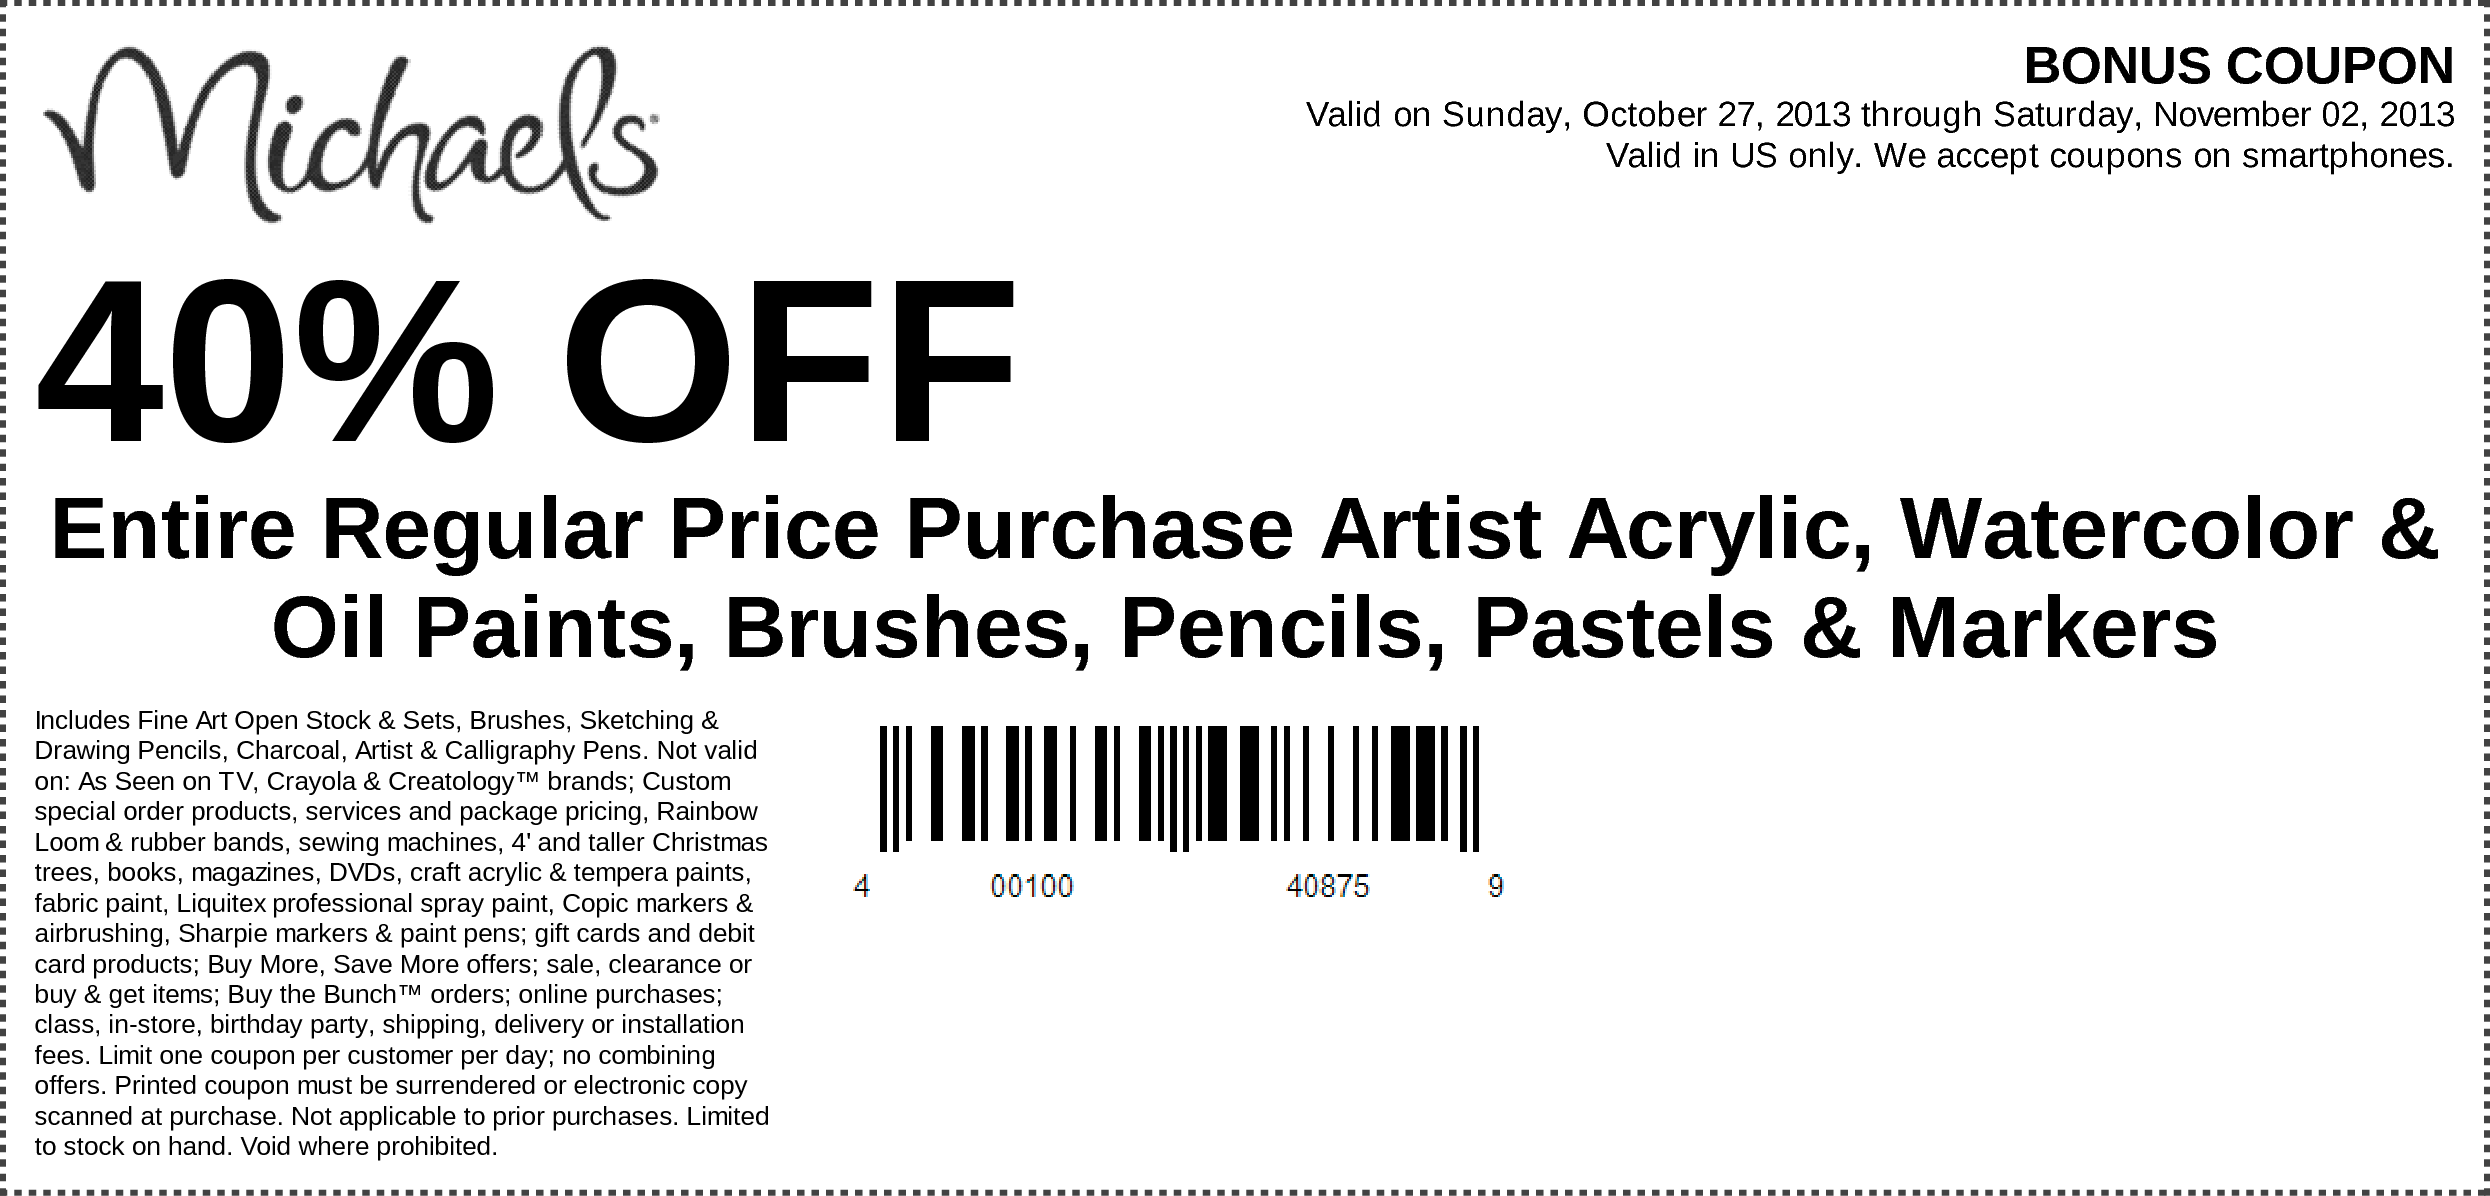 Pin By 一针 封 On 3453bhfcc Printable Coupons Coupons Michaels